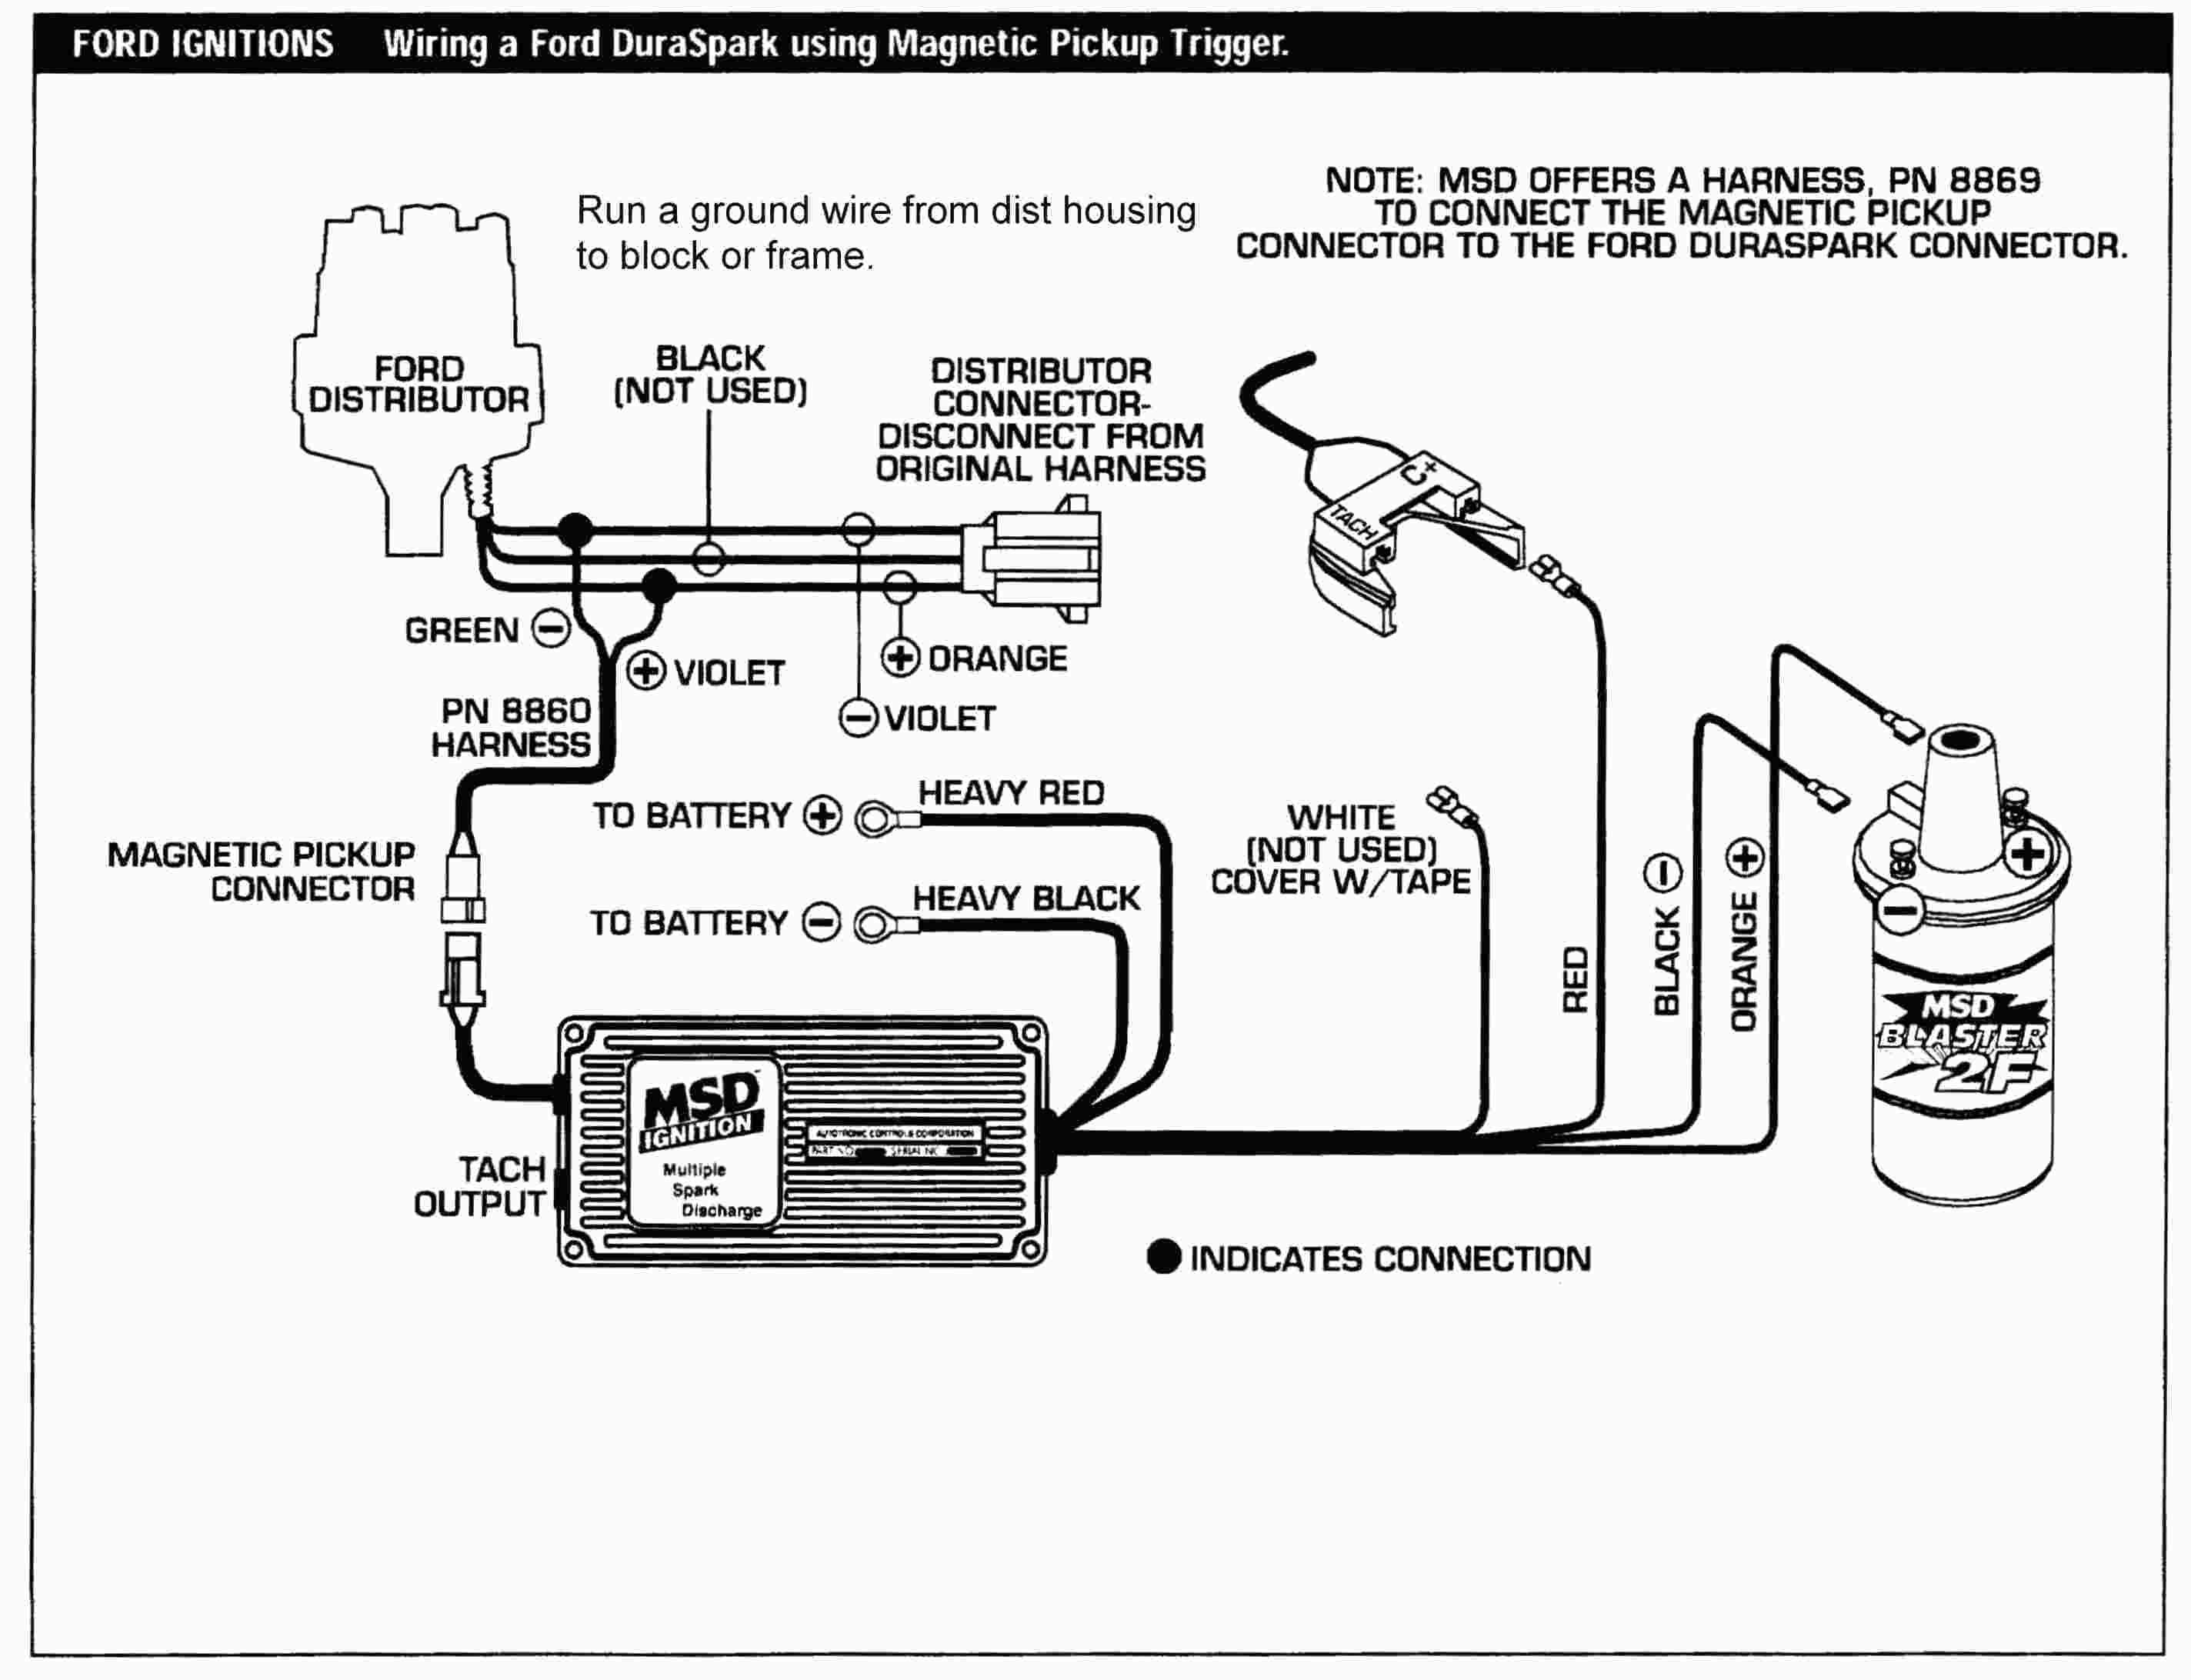 Duraspark 2 Wiring Diagram New ford Ignition Wiring Diagram – Fooddailyub  Duraspark 2 Wiring Diagram